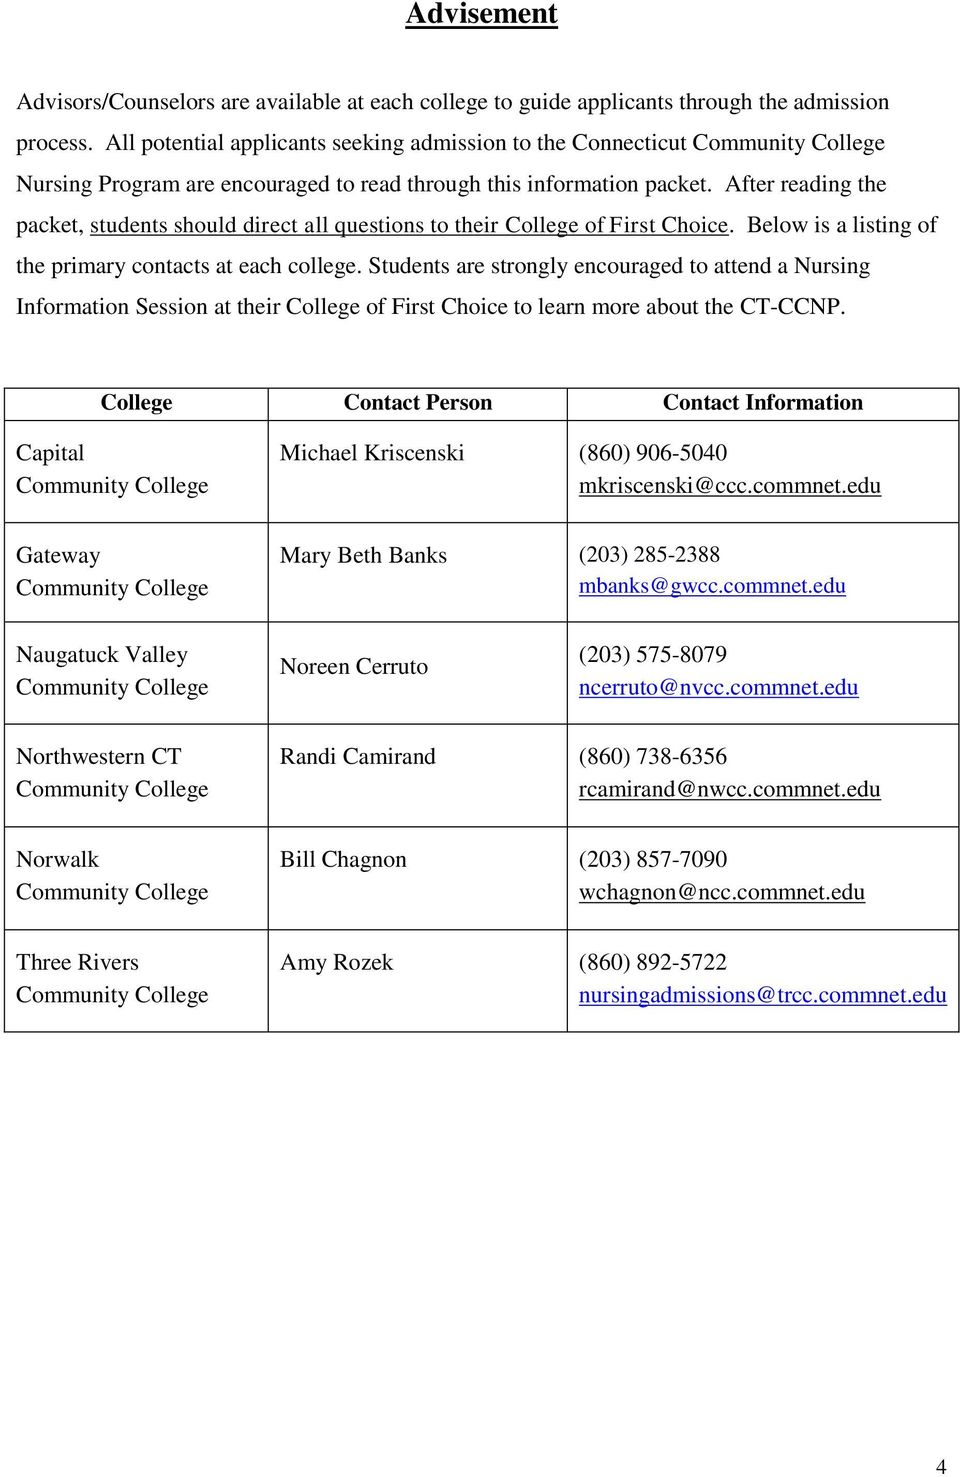 After reading the packet, students should direct all questions to their College of First Choice. Below is a listing of the primary contacts at each college.